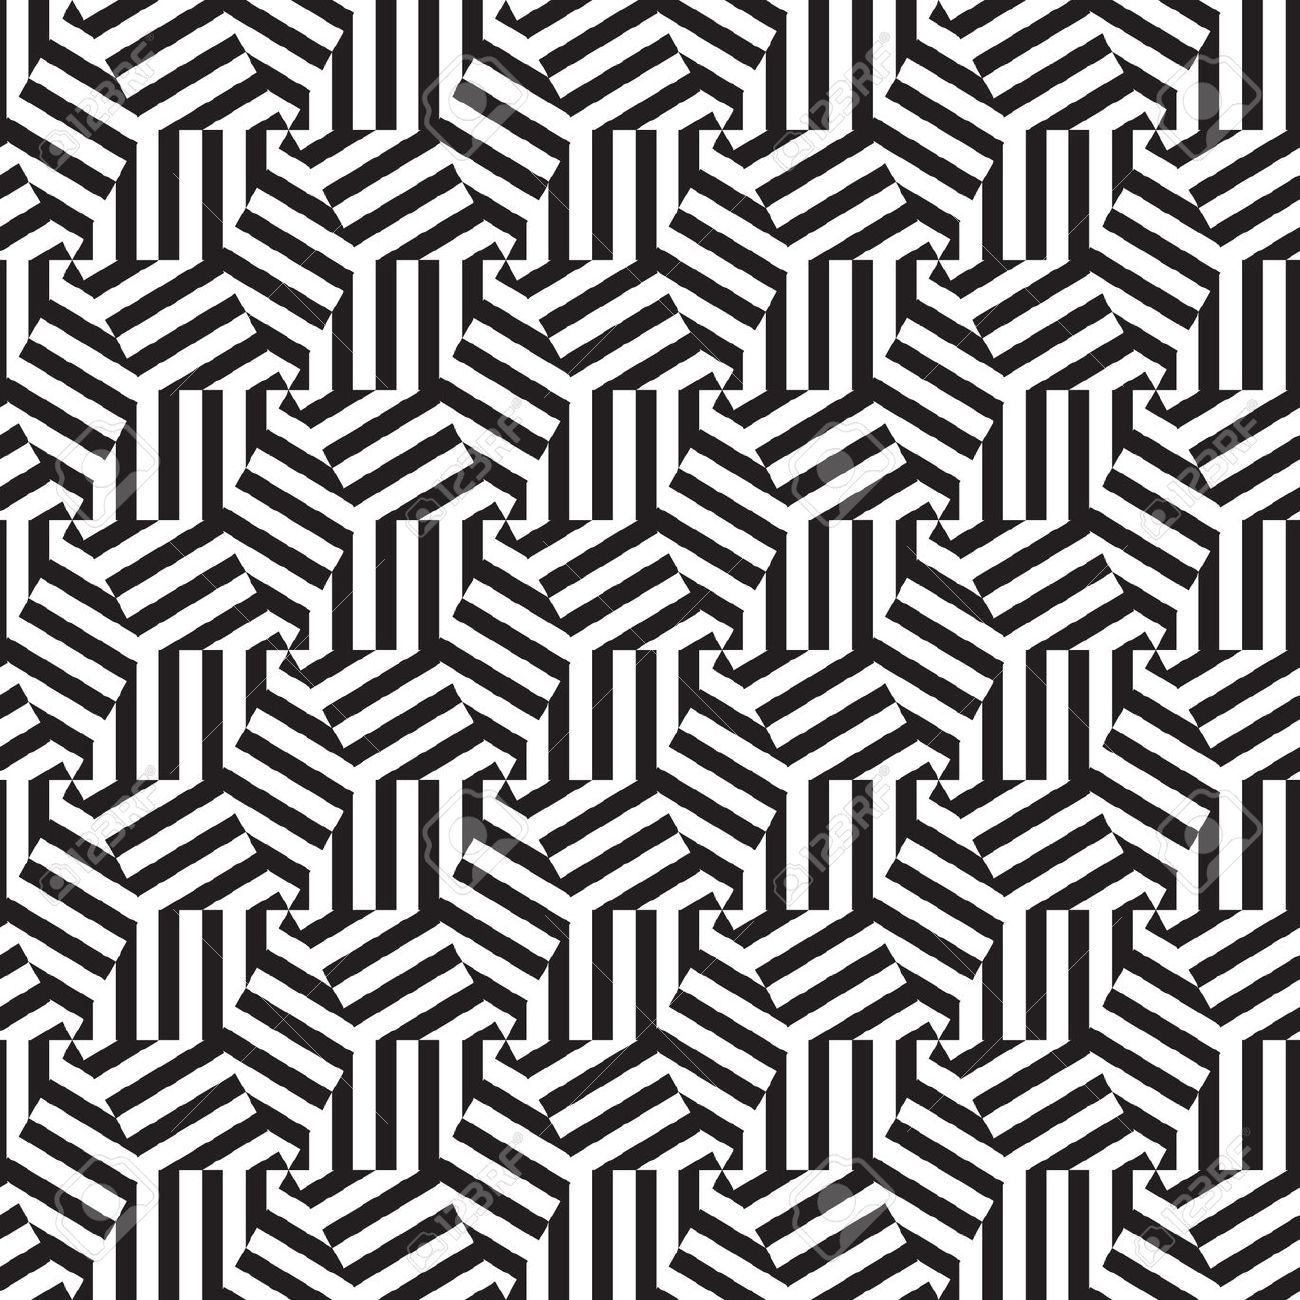 17 Best images about patterns-printing on Pinterest   City scapes ...